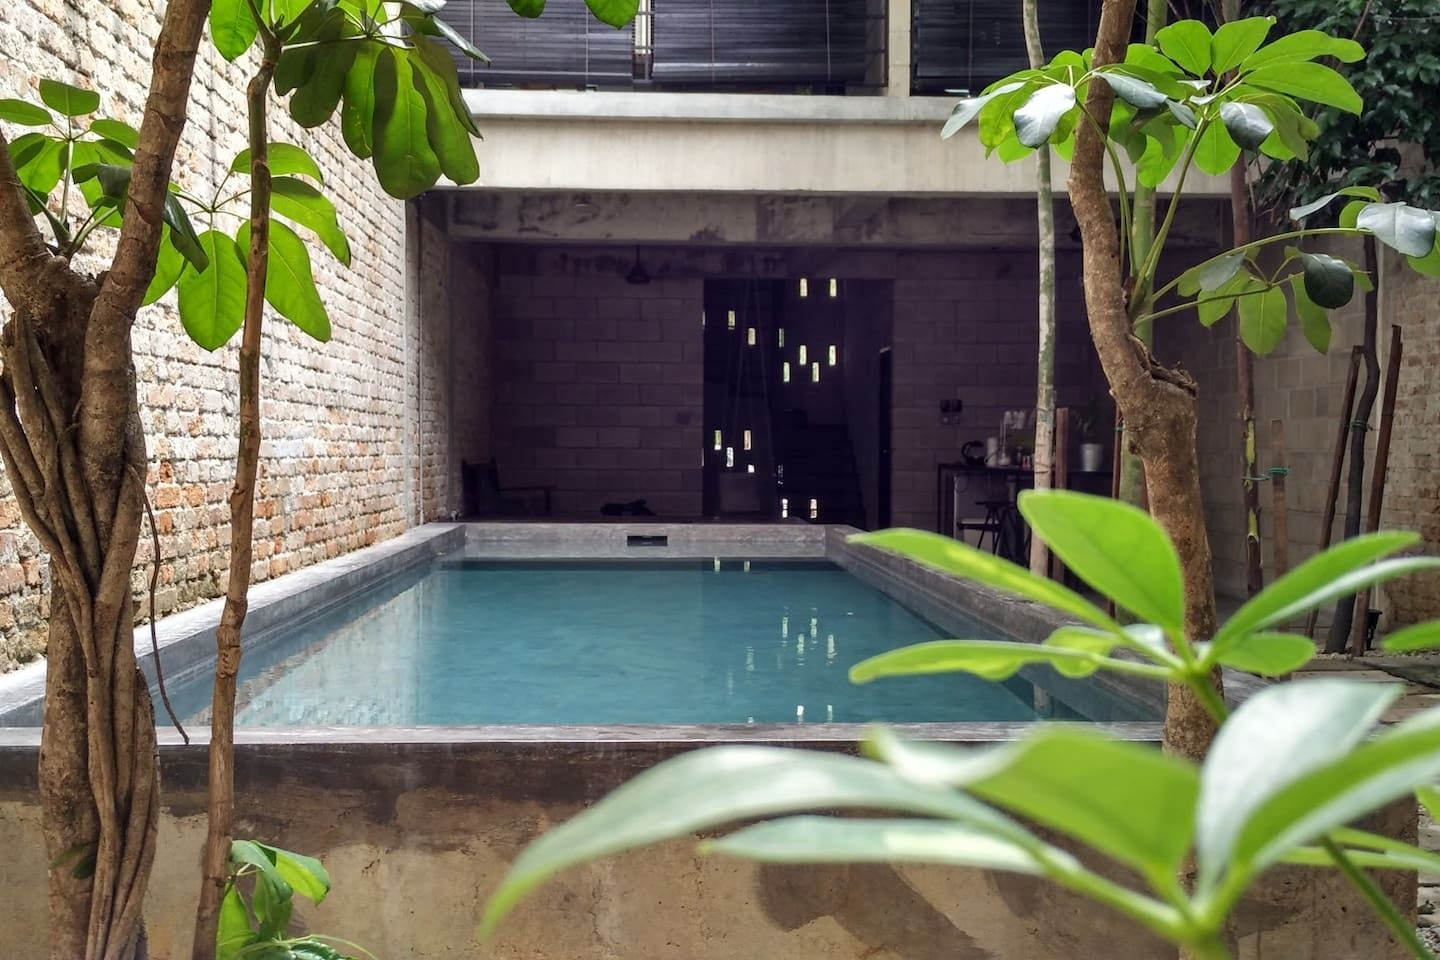 Courtyard House Private Pool 10 Beds Townhouses For Rent In Kuala Lumpur Courtyard House Townhouse For Rent Guest House